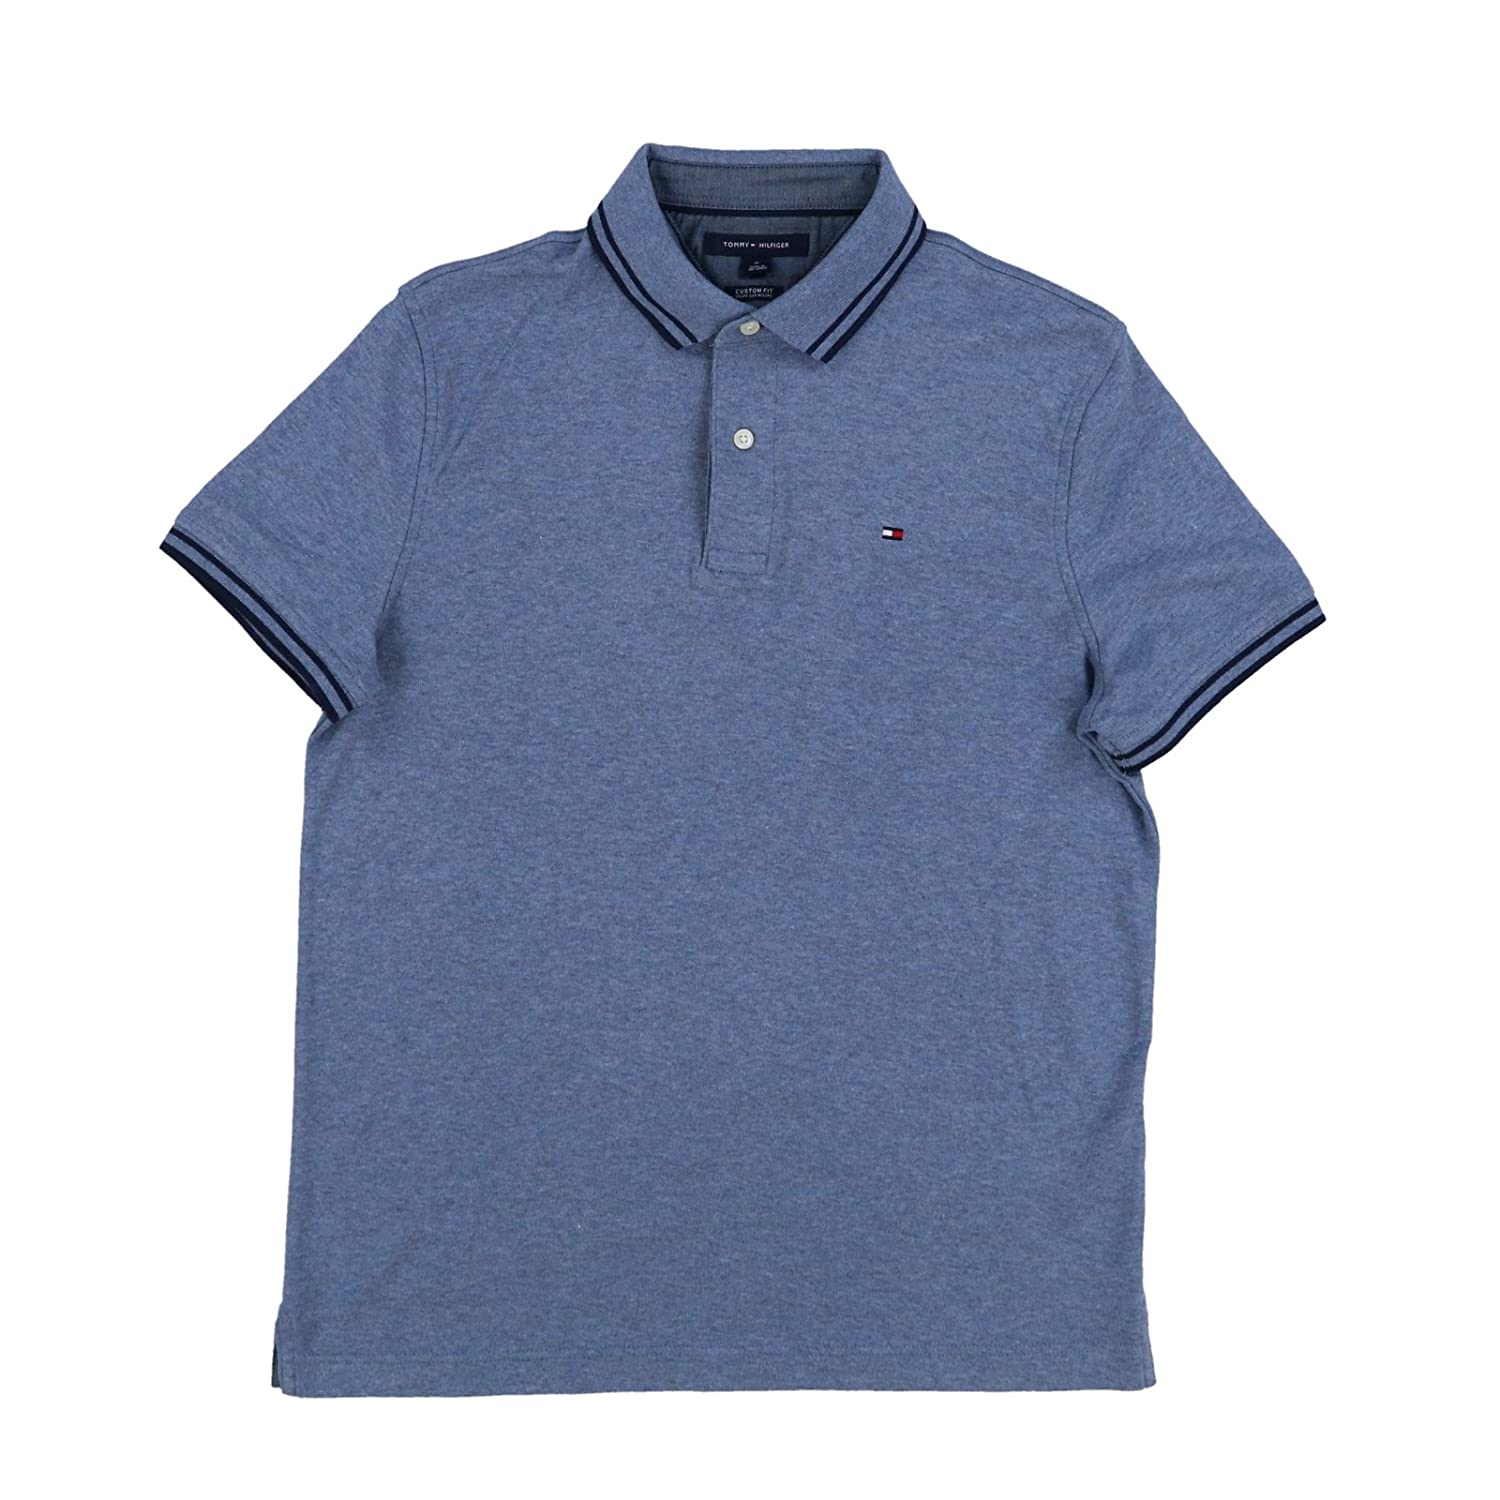 6b1a773c7 Online Cheap wholesale Tommy Hilfiger Mens Custom Fit Polo Shirt Suppliers